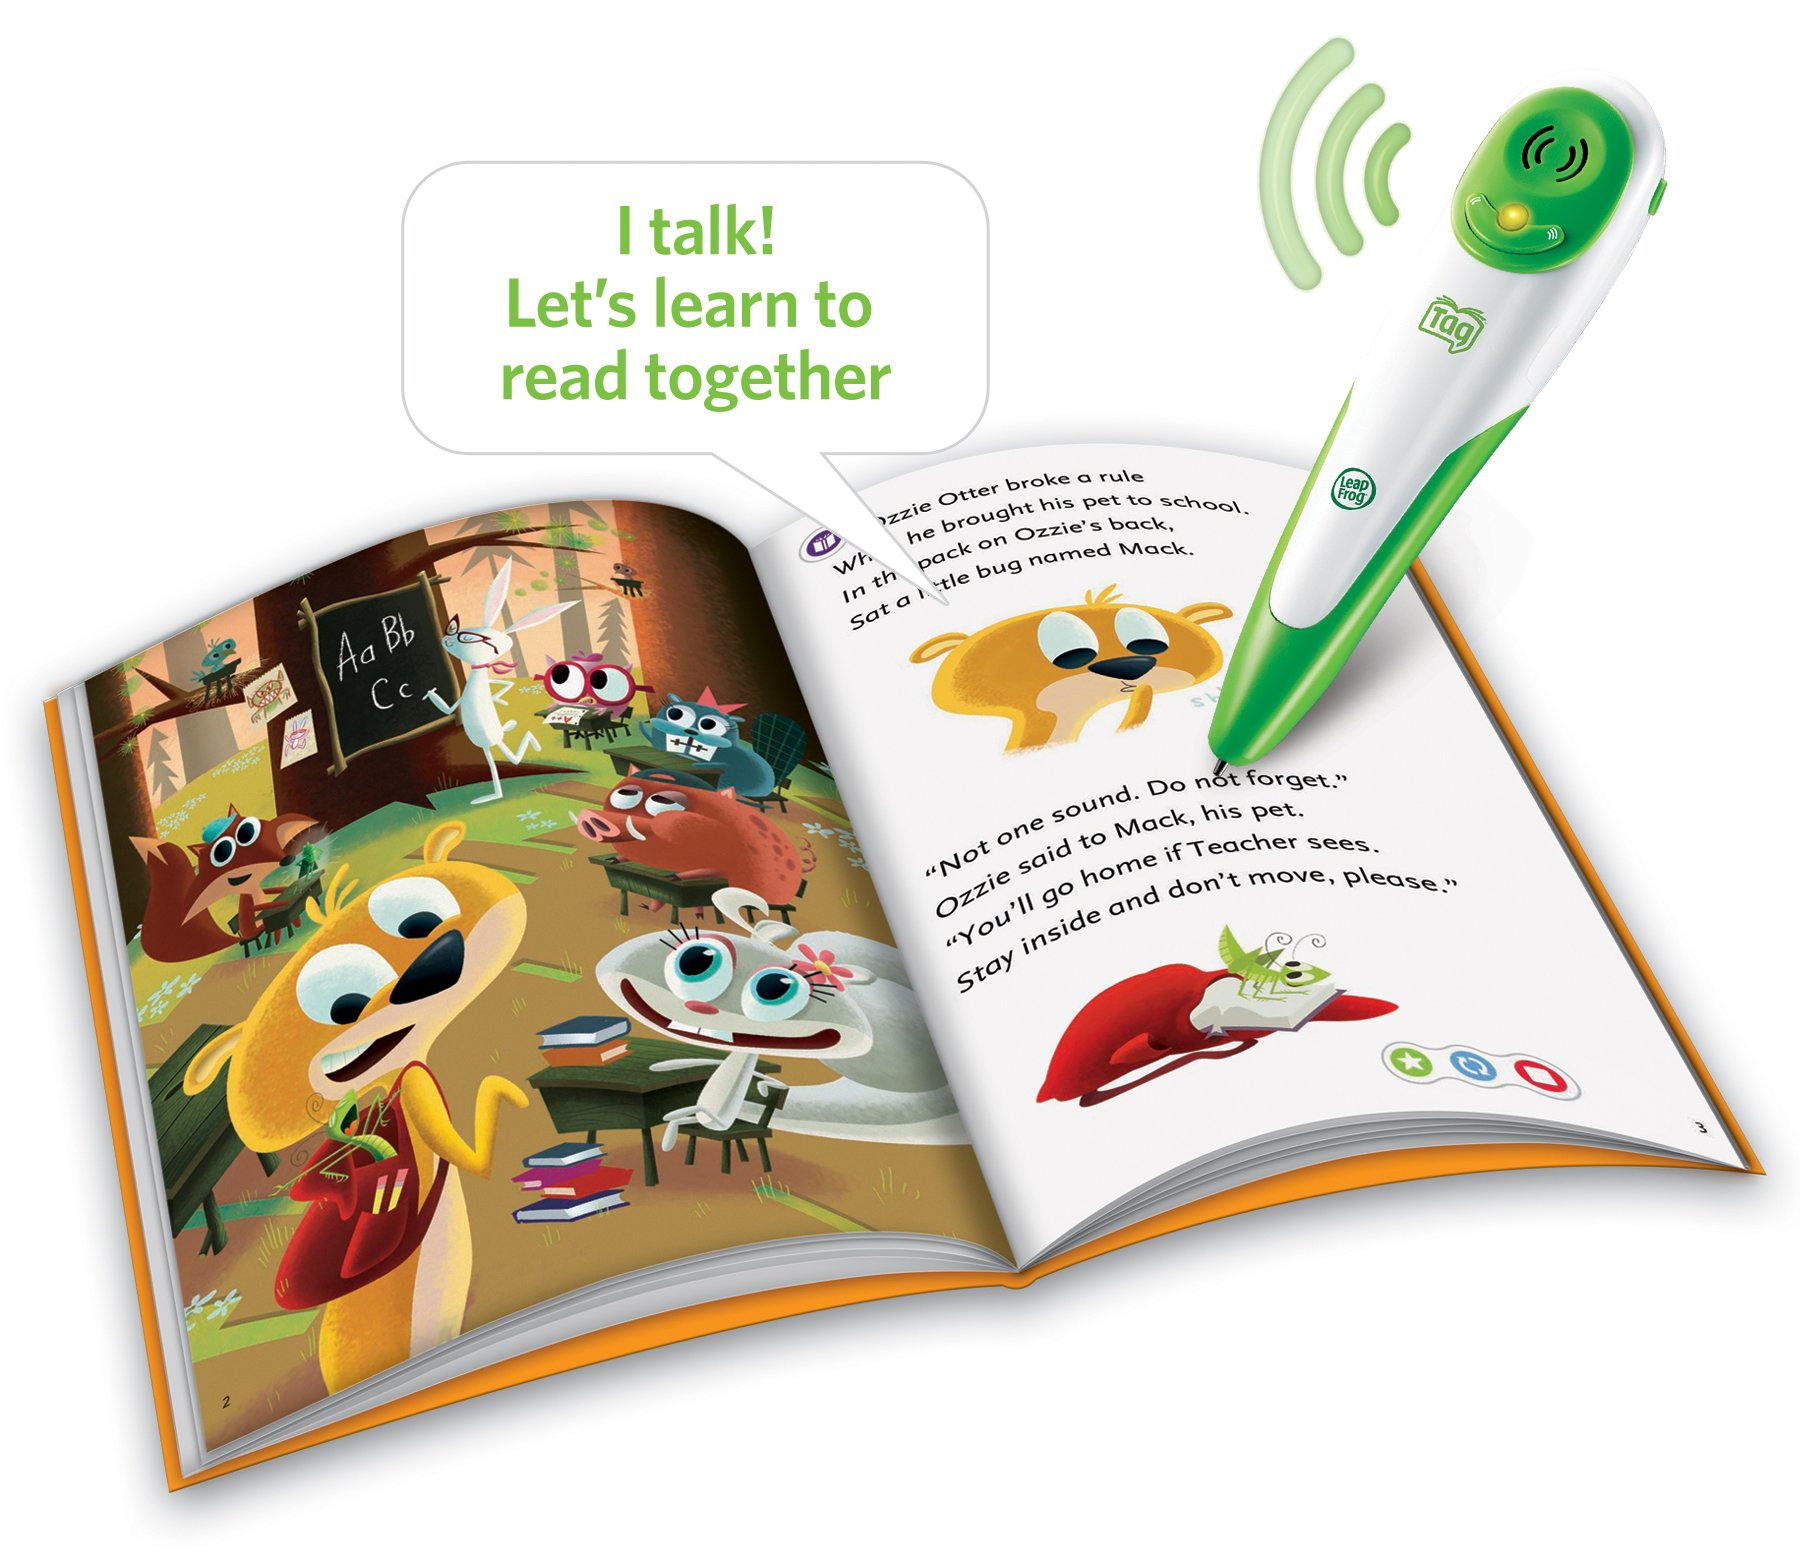 LeapFrog®  Tag Reading System (16 MB) by LeapFrog (Image #4)